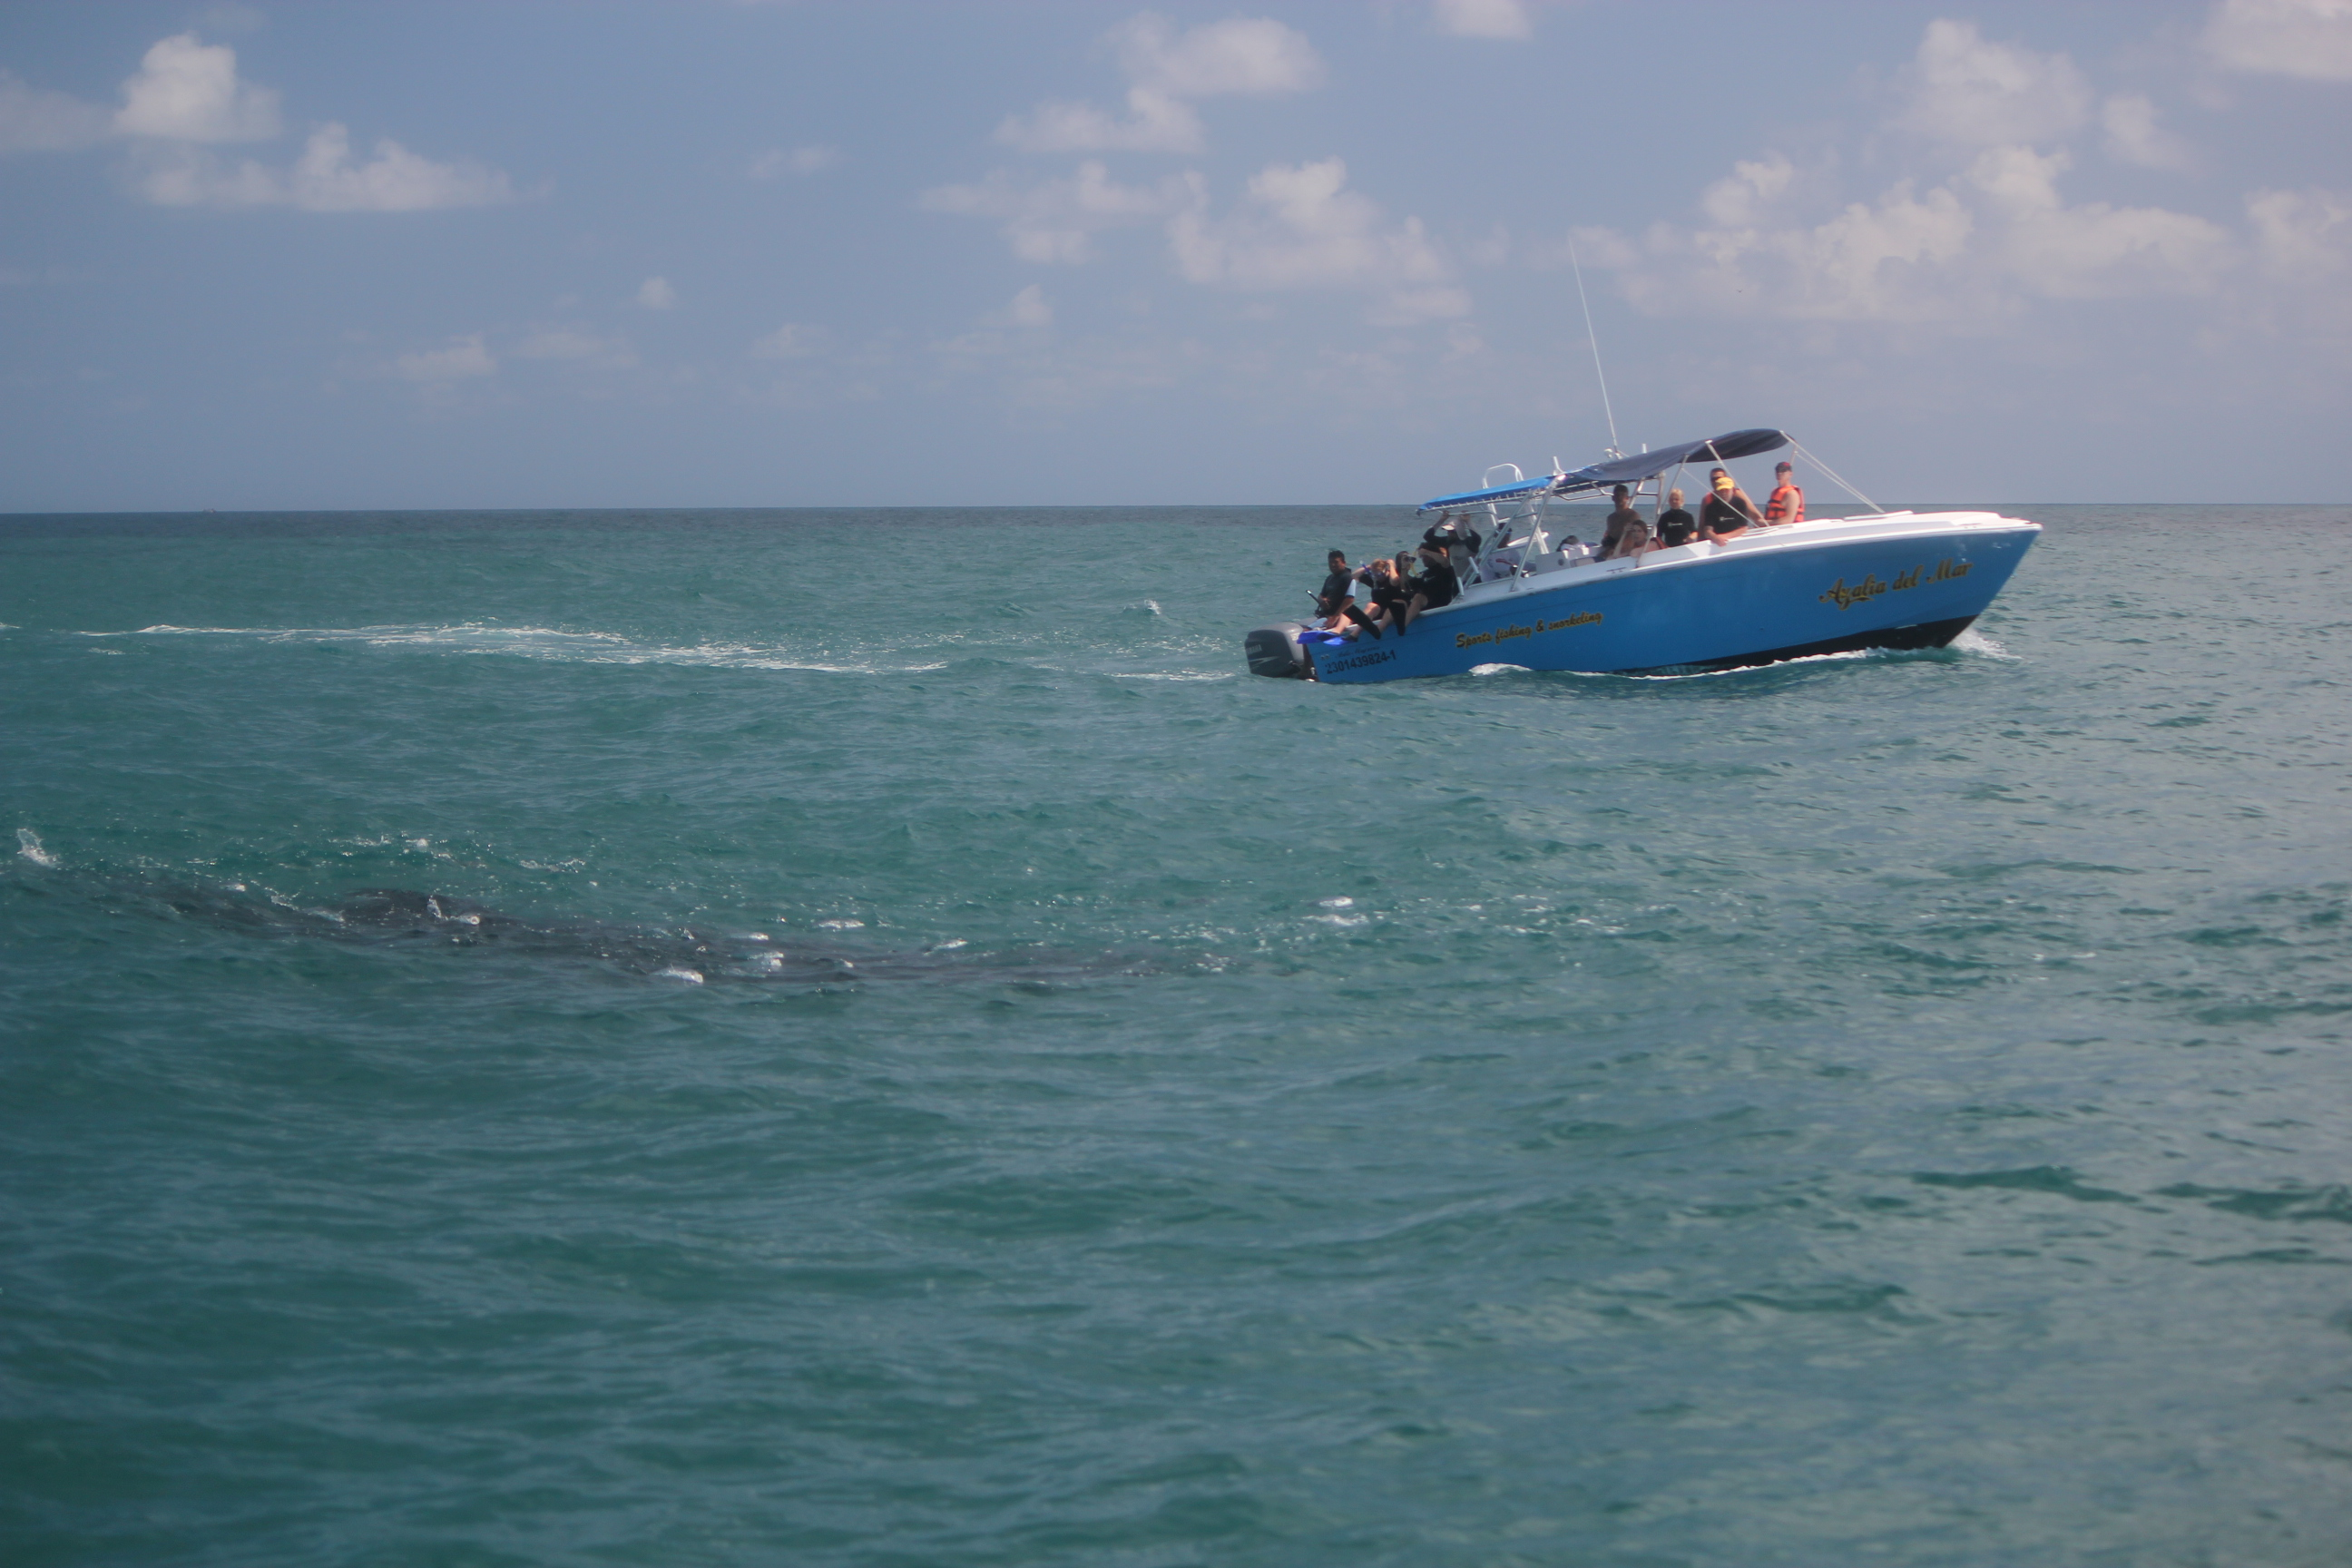 Whale Shark Expedition (Boat & Whale Shark); Cancun, Mexico; 2011